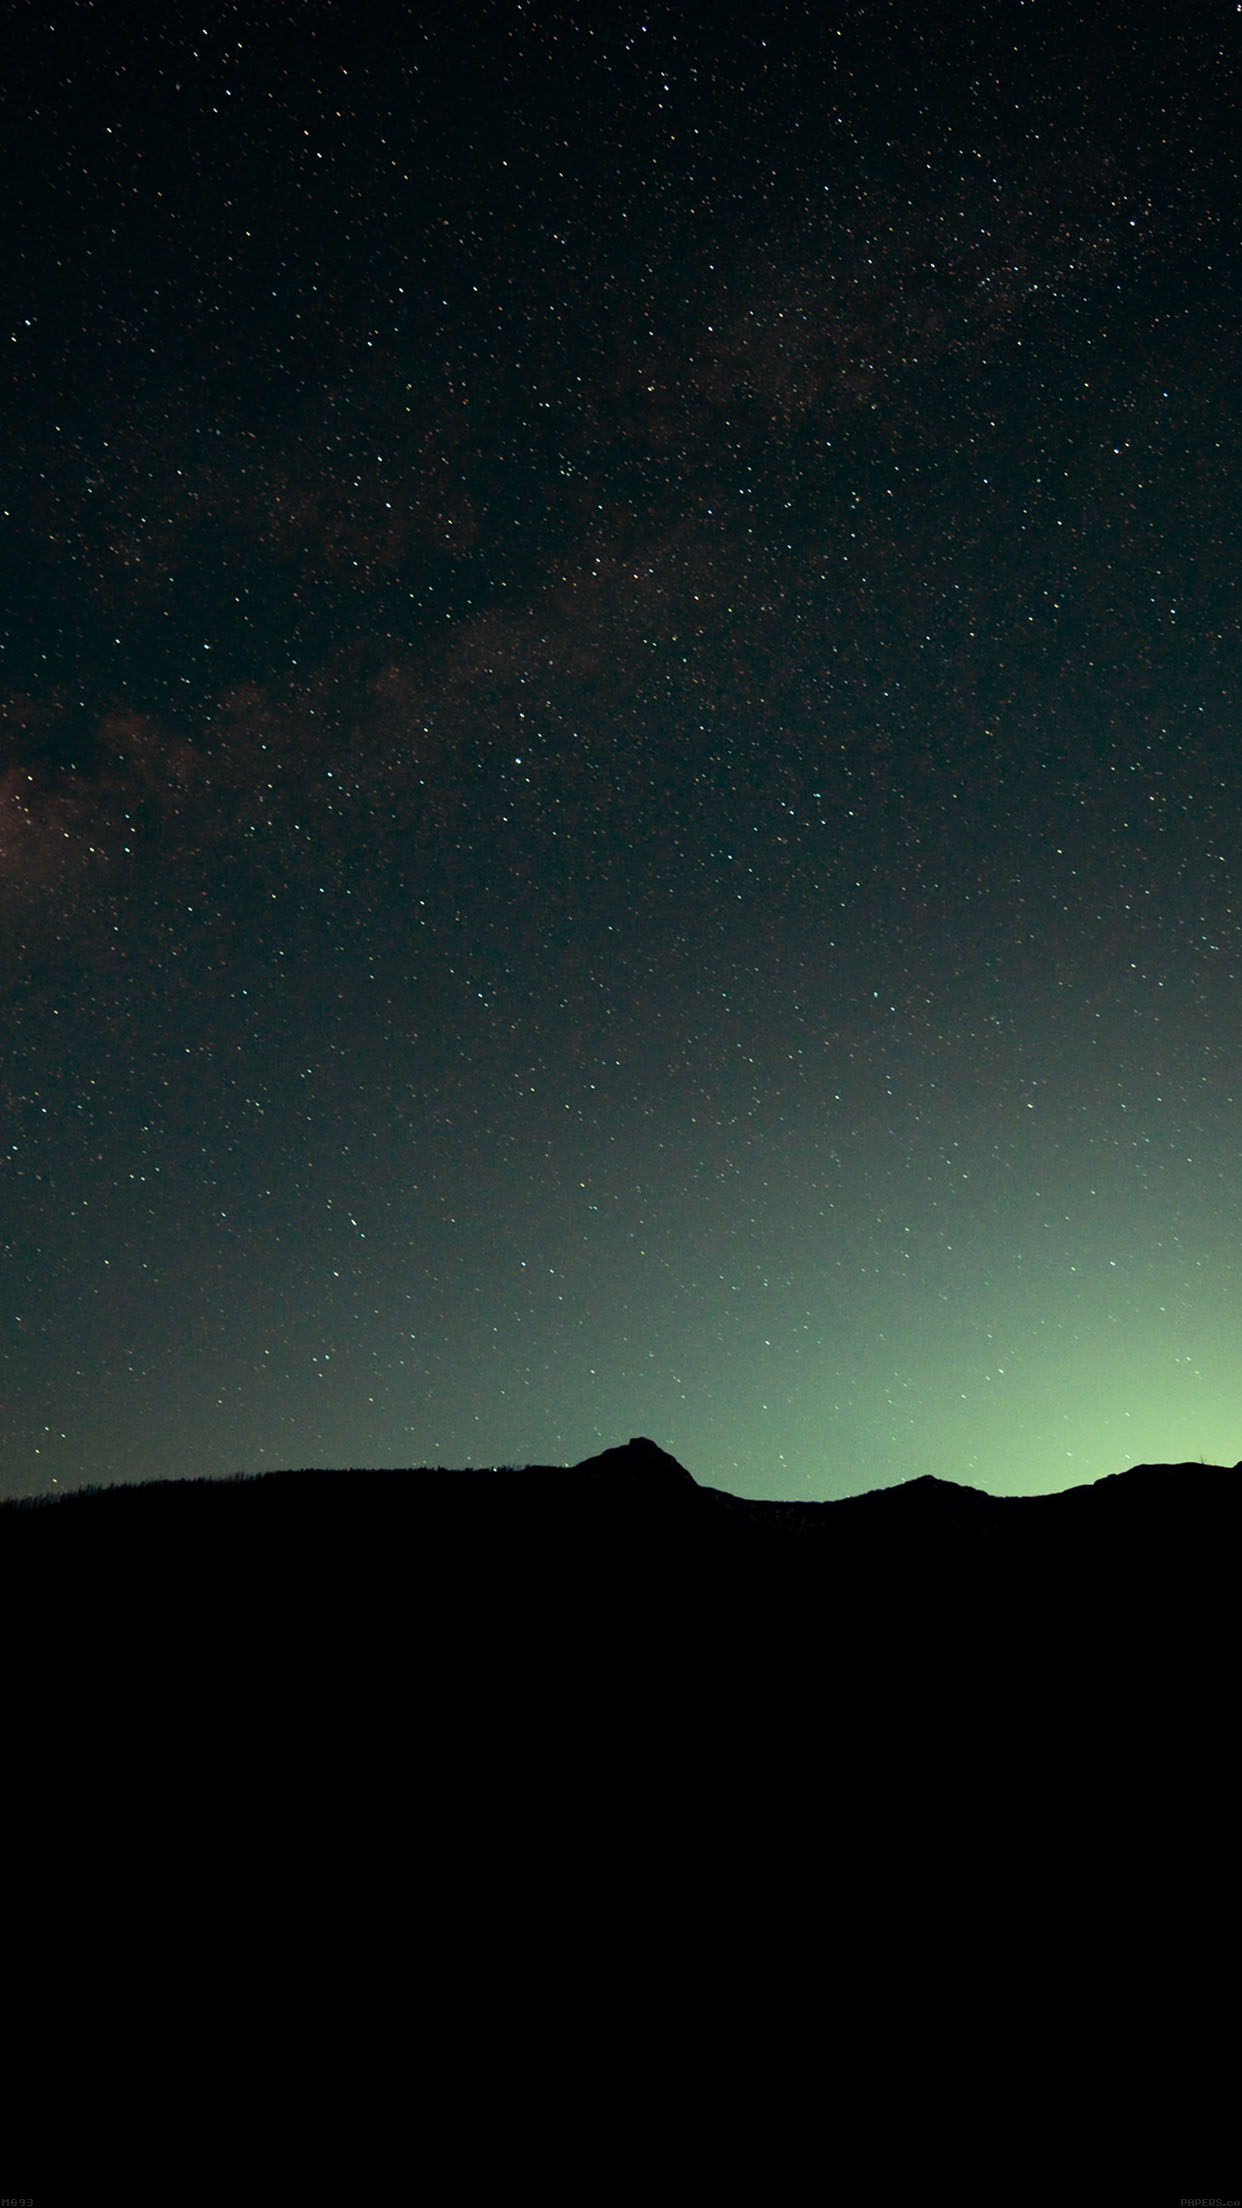 Car Hd Wallpaper For Iphone Mg93 Night Sky Green Wide Mountain Star Shining Nature